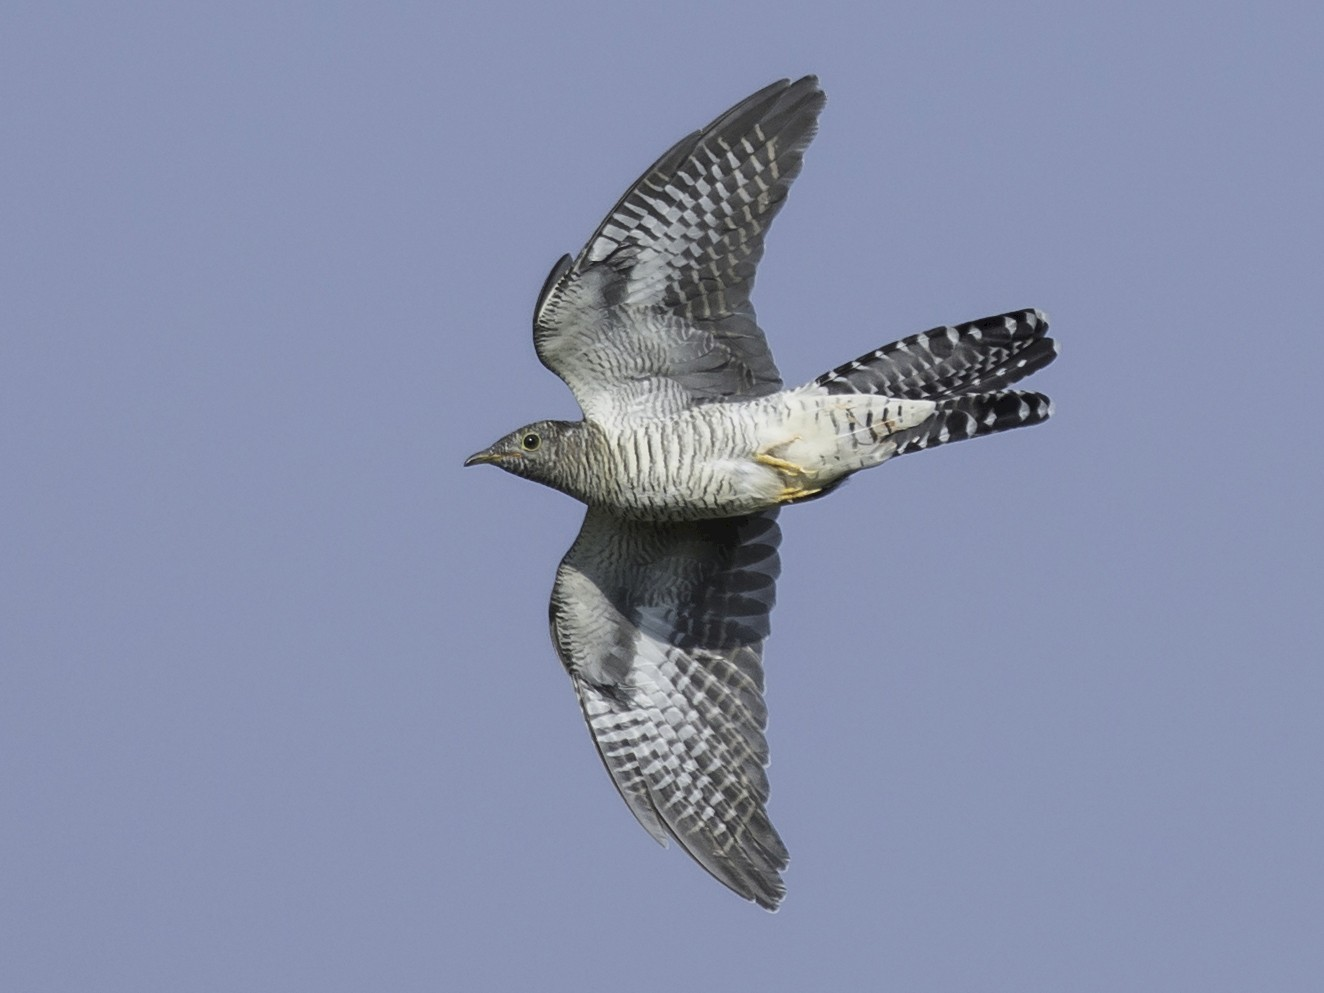 Common Cuckoo - Batmunkh Davaasuren